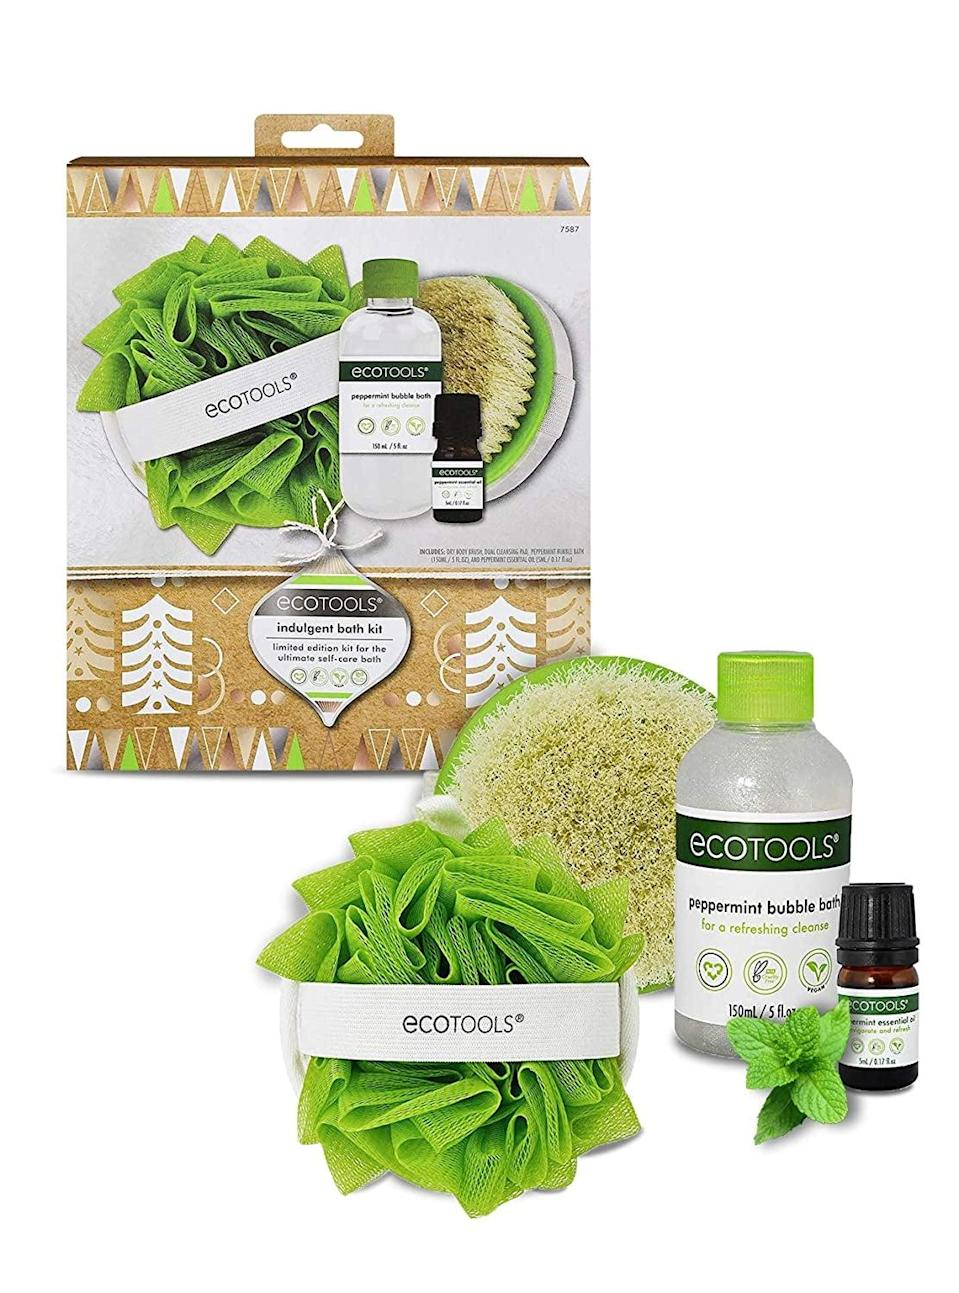 <p>Treat yourself to the full package of peppermint goodness with the <span>EcoTools Indulgent Bath Gift Kit</span> ($15). It comes with a peppermint bubble bath, dry body brush, loofah bath sponge, and peppermint essential oil.</p>